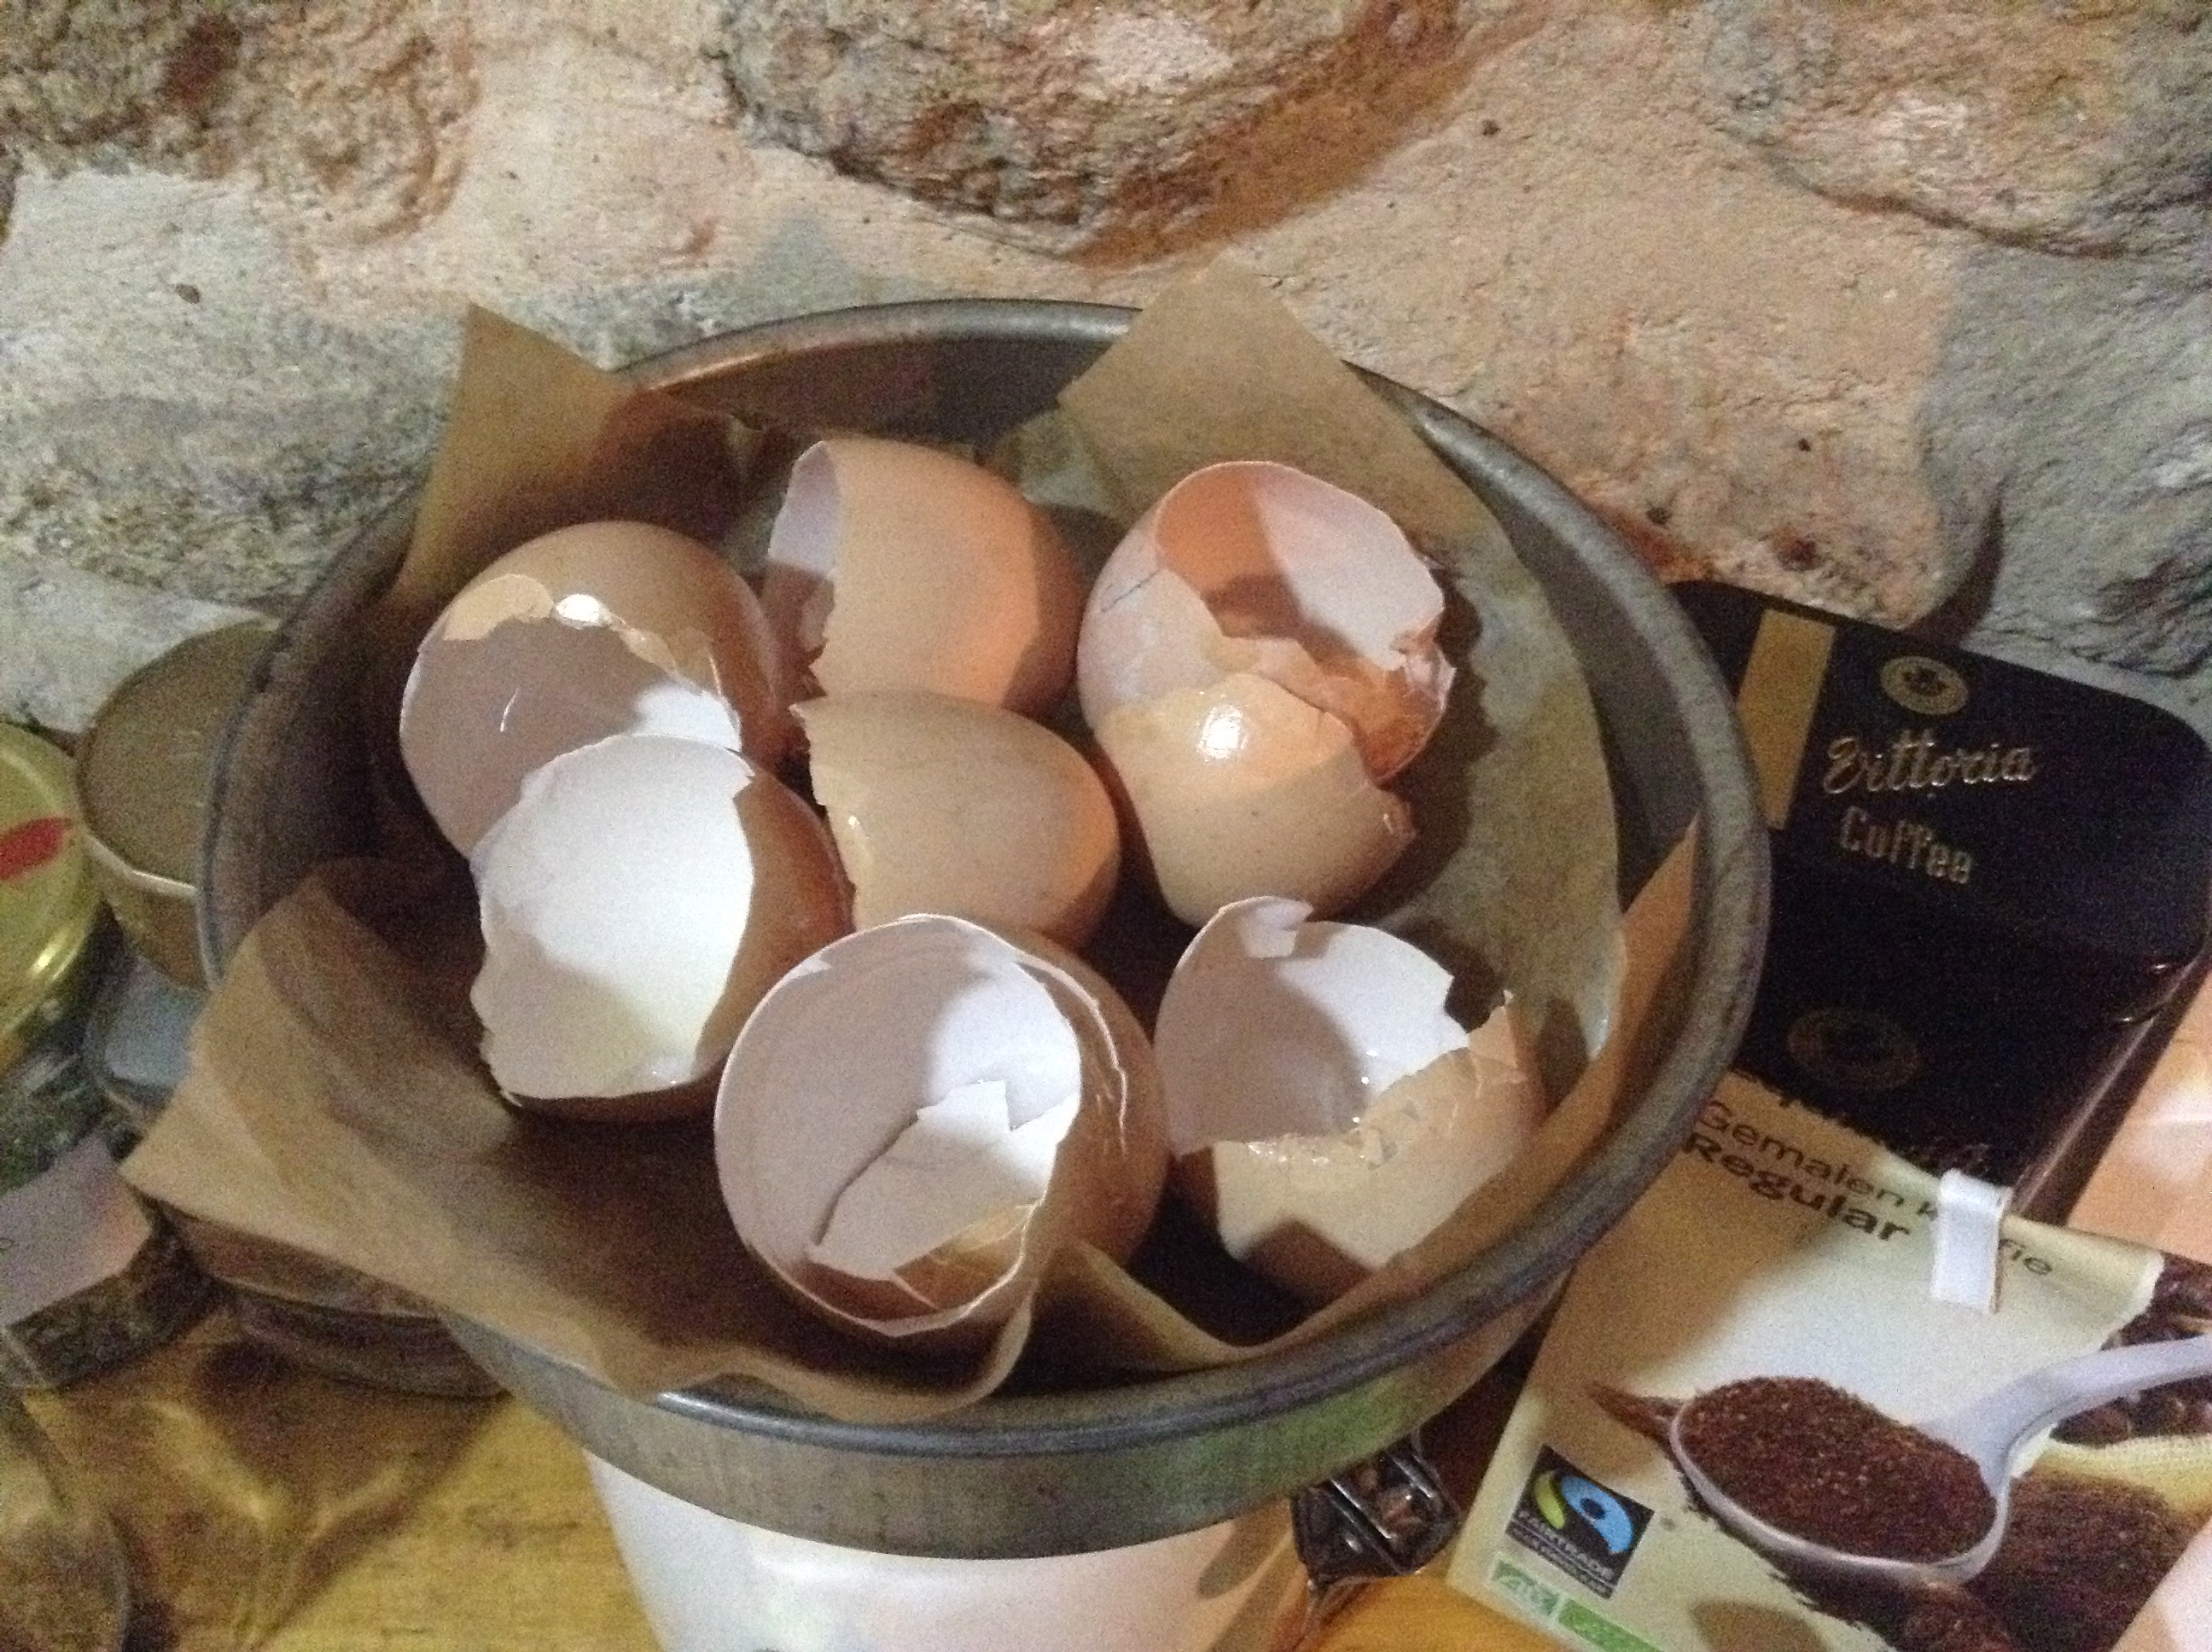 feeding your chickens/hens eggshells.